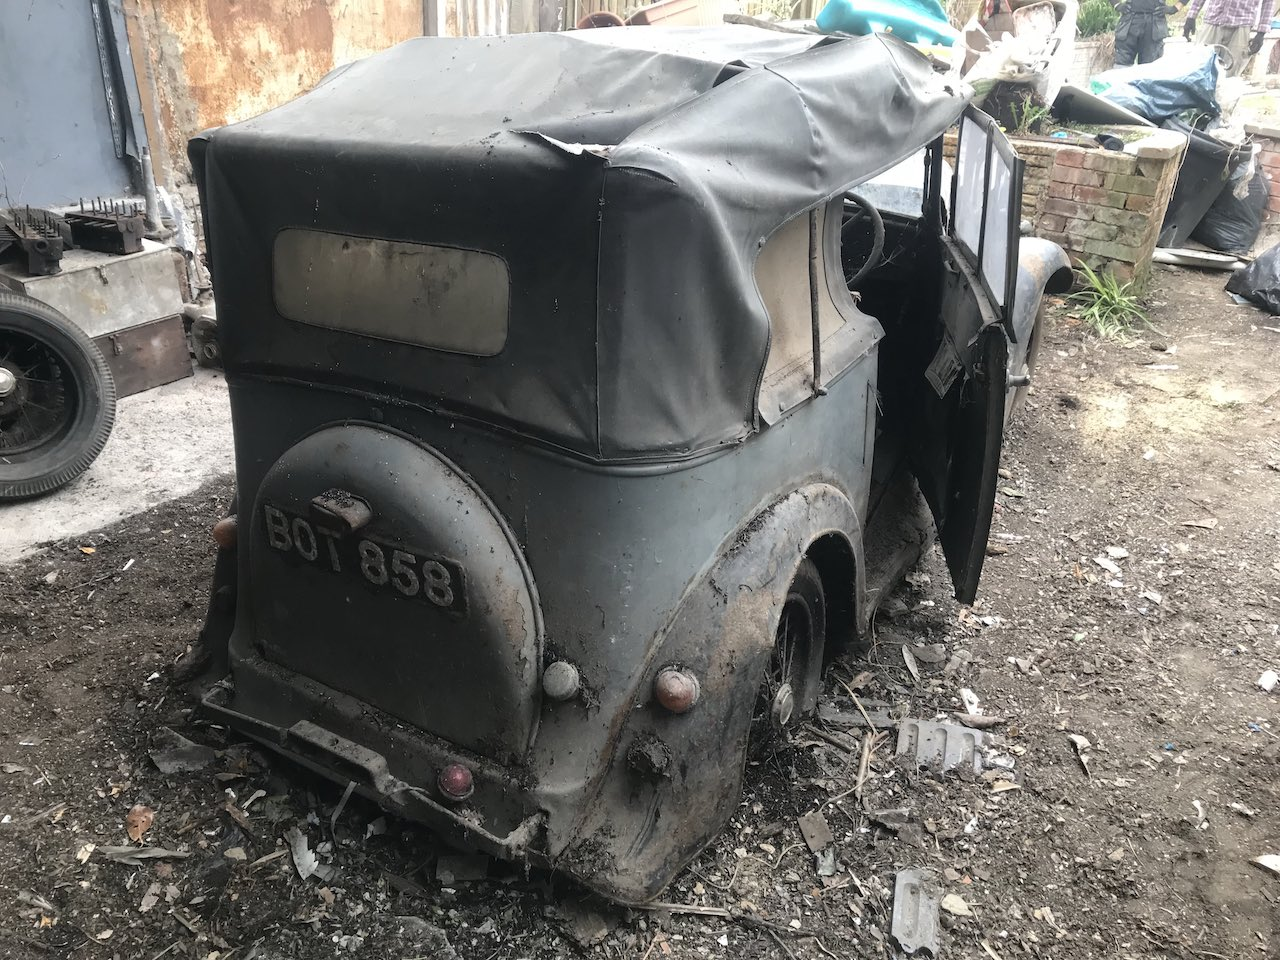 96 Club discovers 1936 Austin 7 Open Tourer in London shed